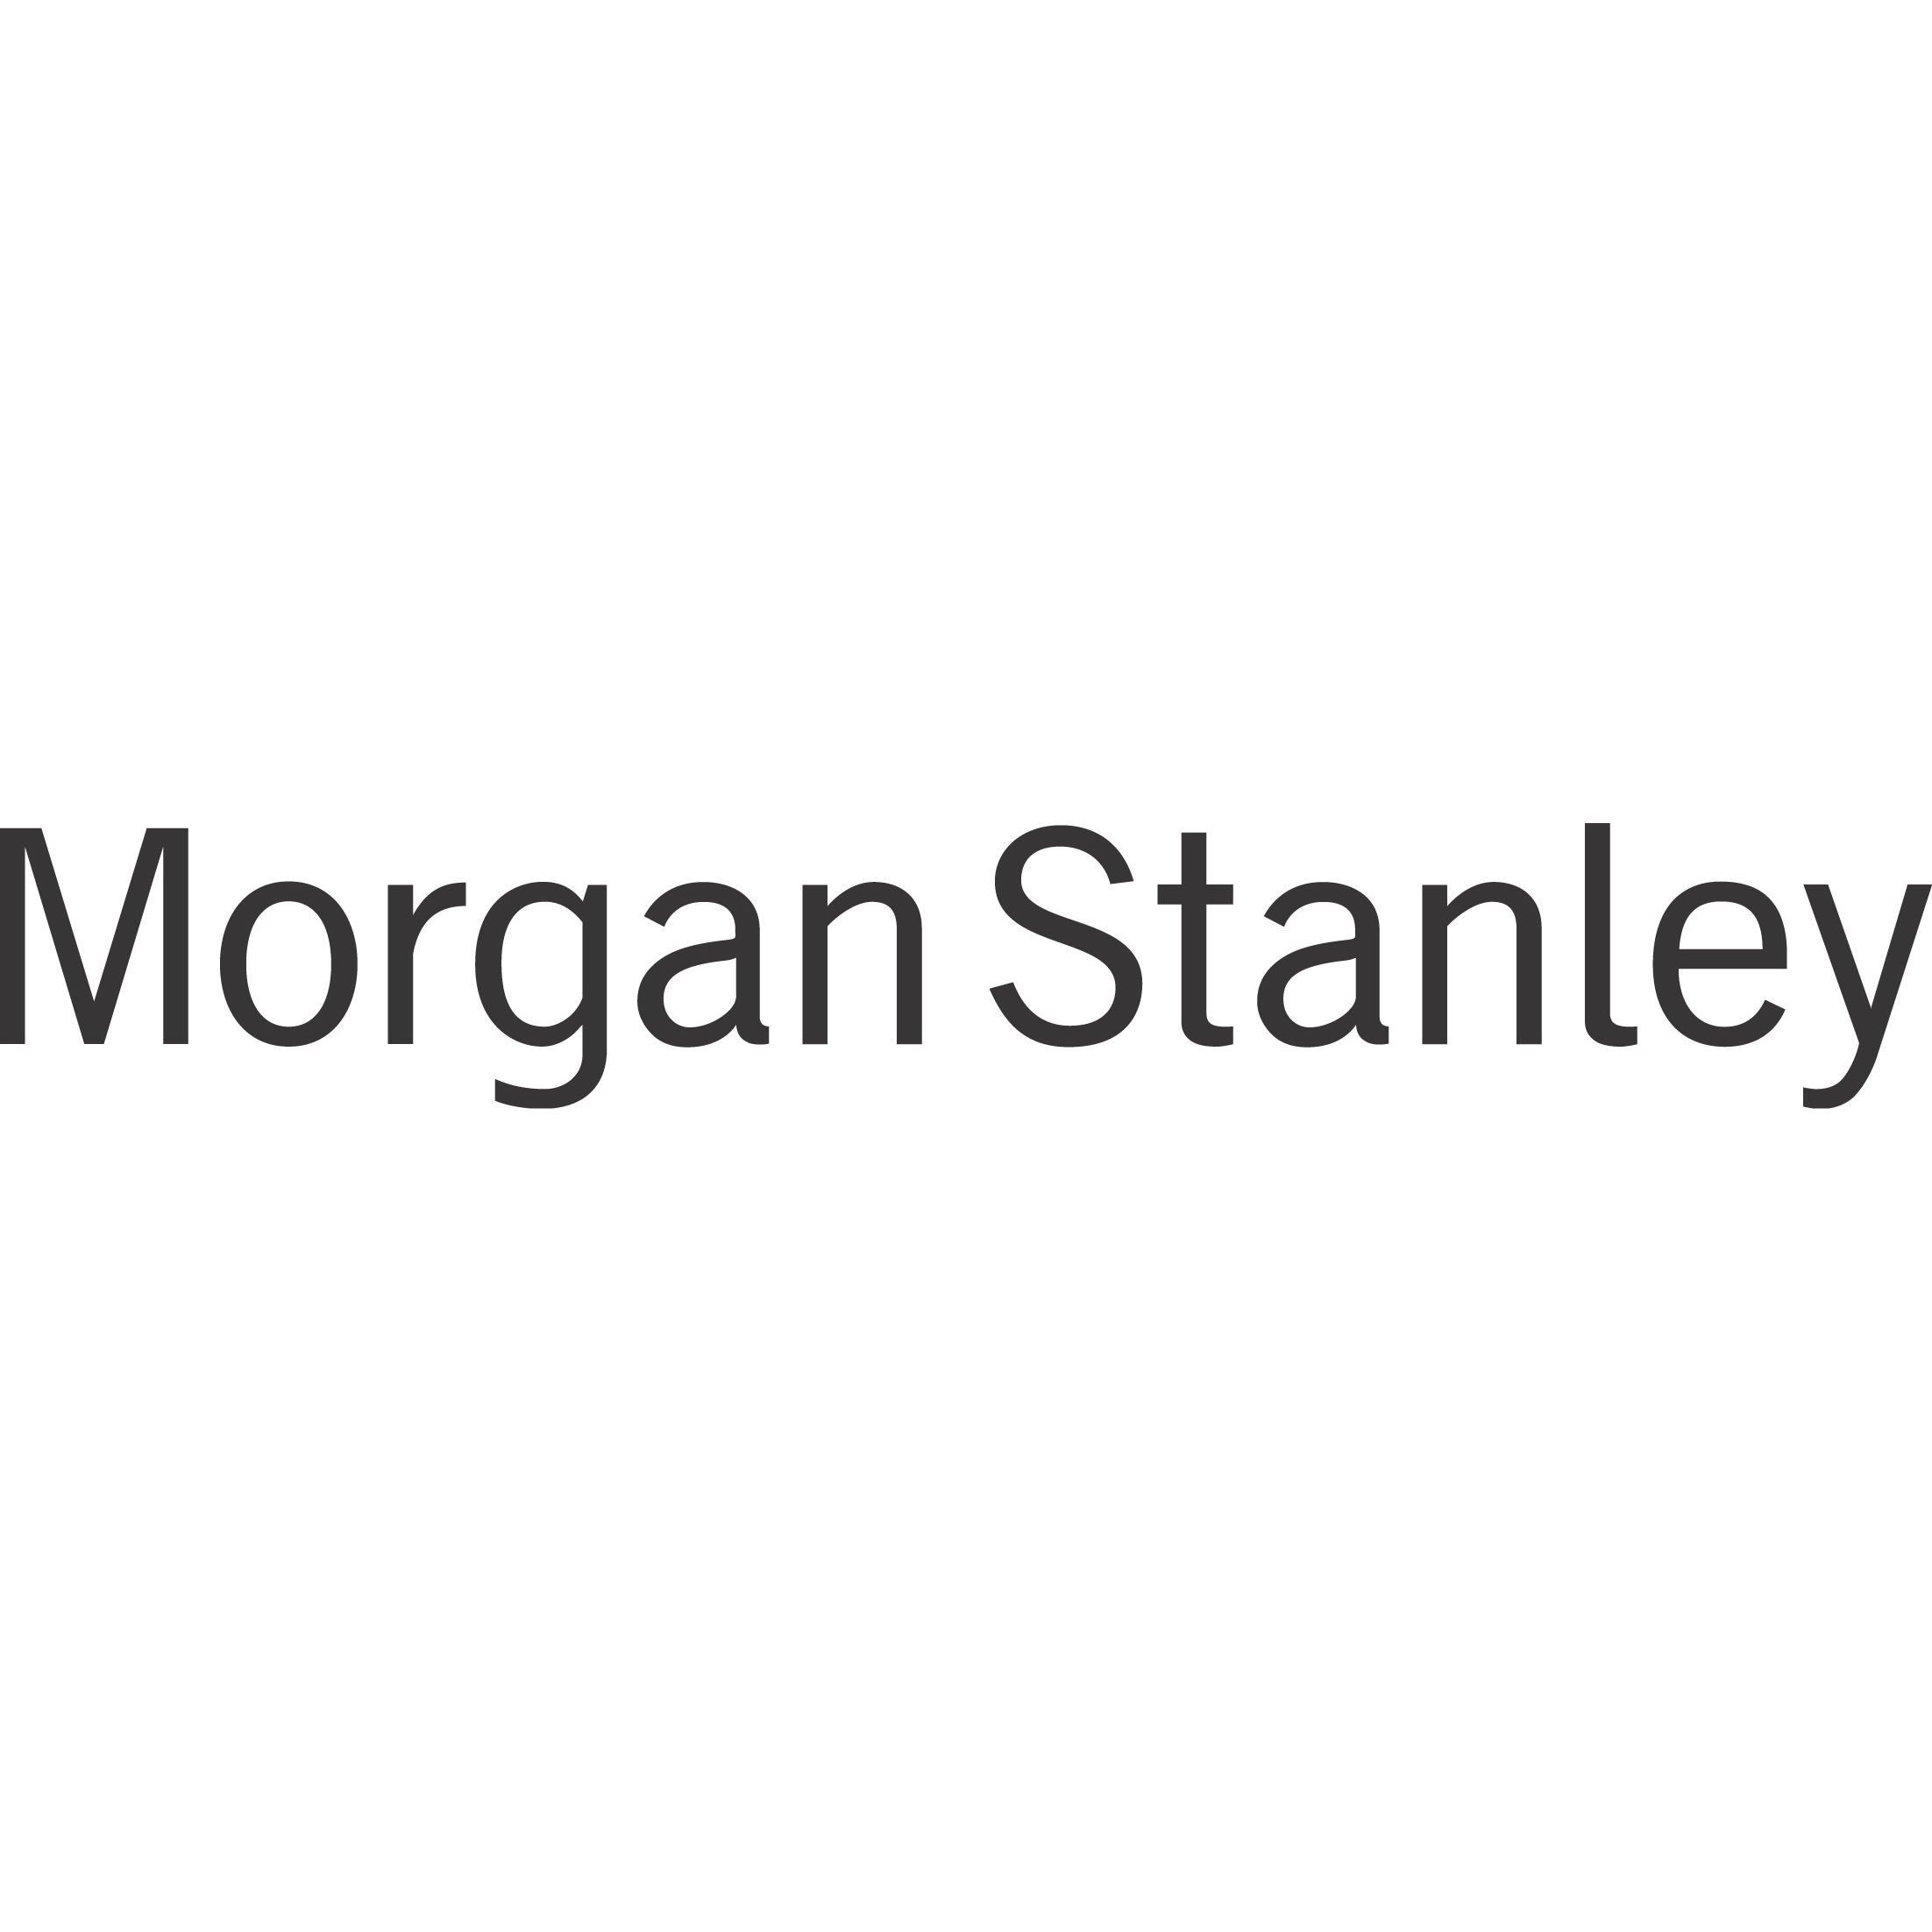 Carl W Vail III - Morgan Stanley | Financial Advisor in Rockville,Maryland